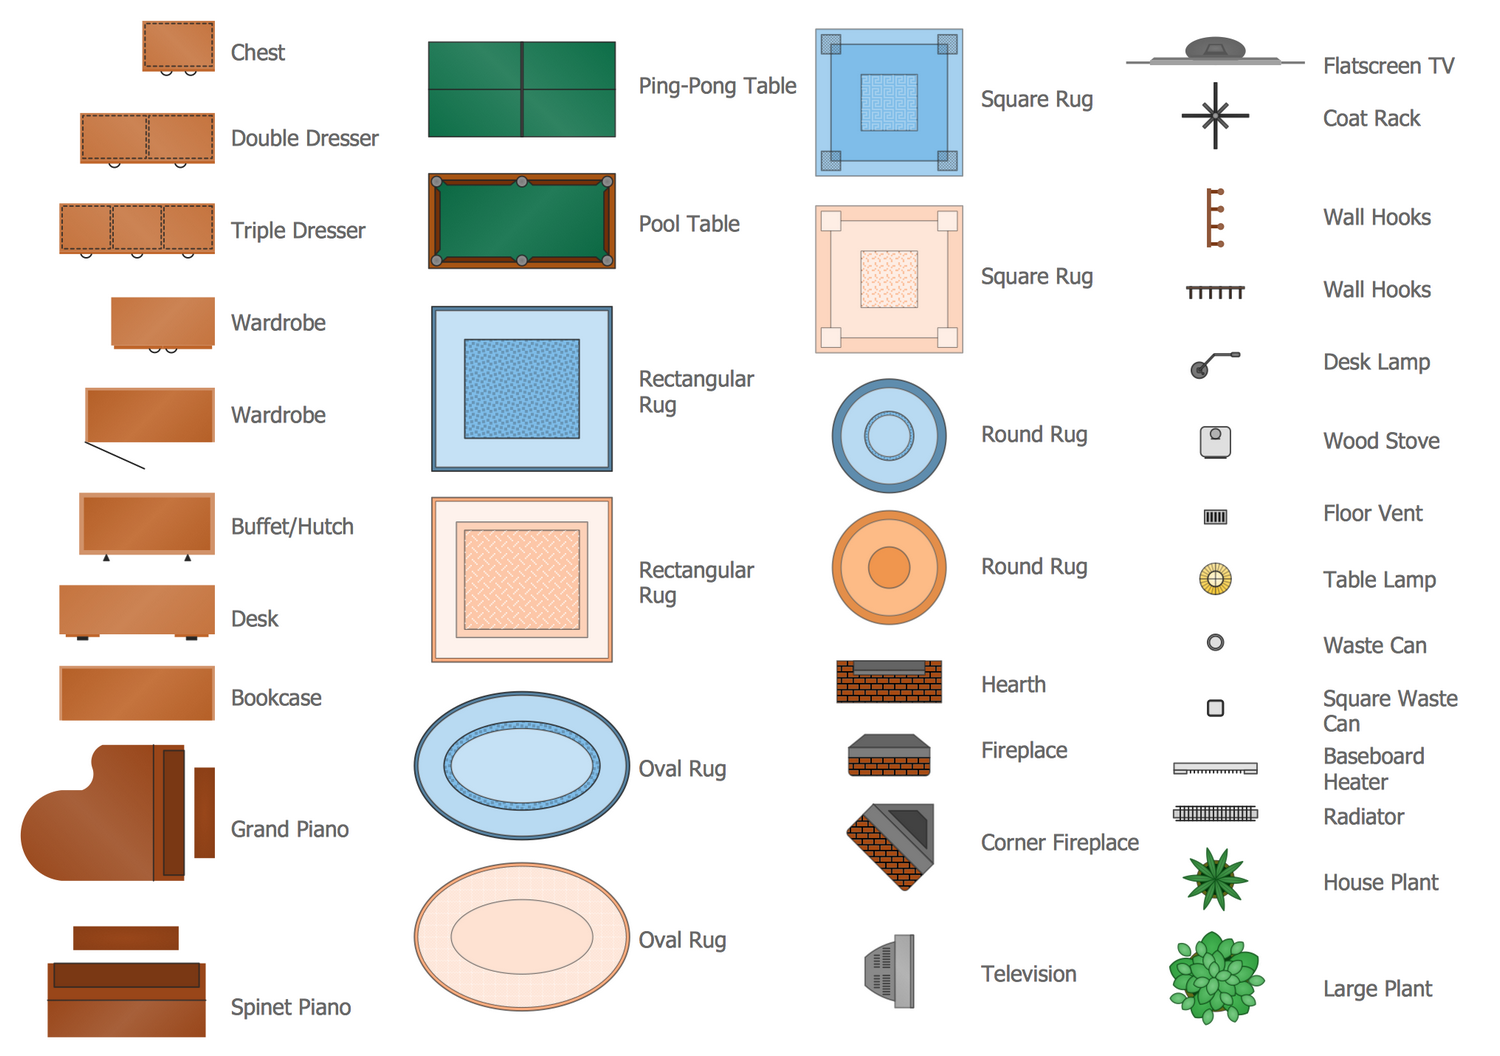 Classroom Furnitures ~ Office layout plans solution conceptdraw